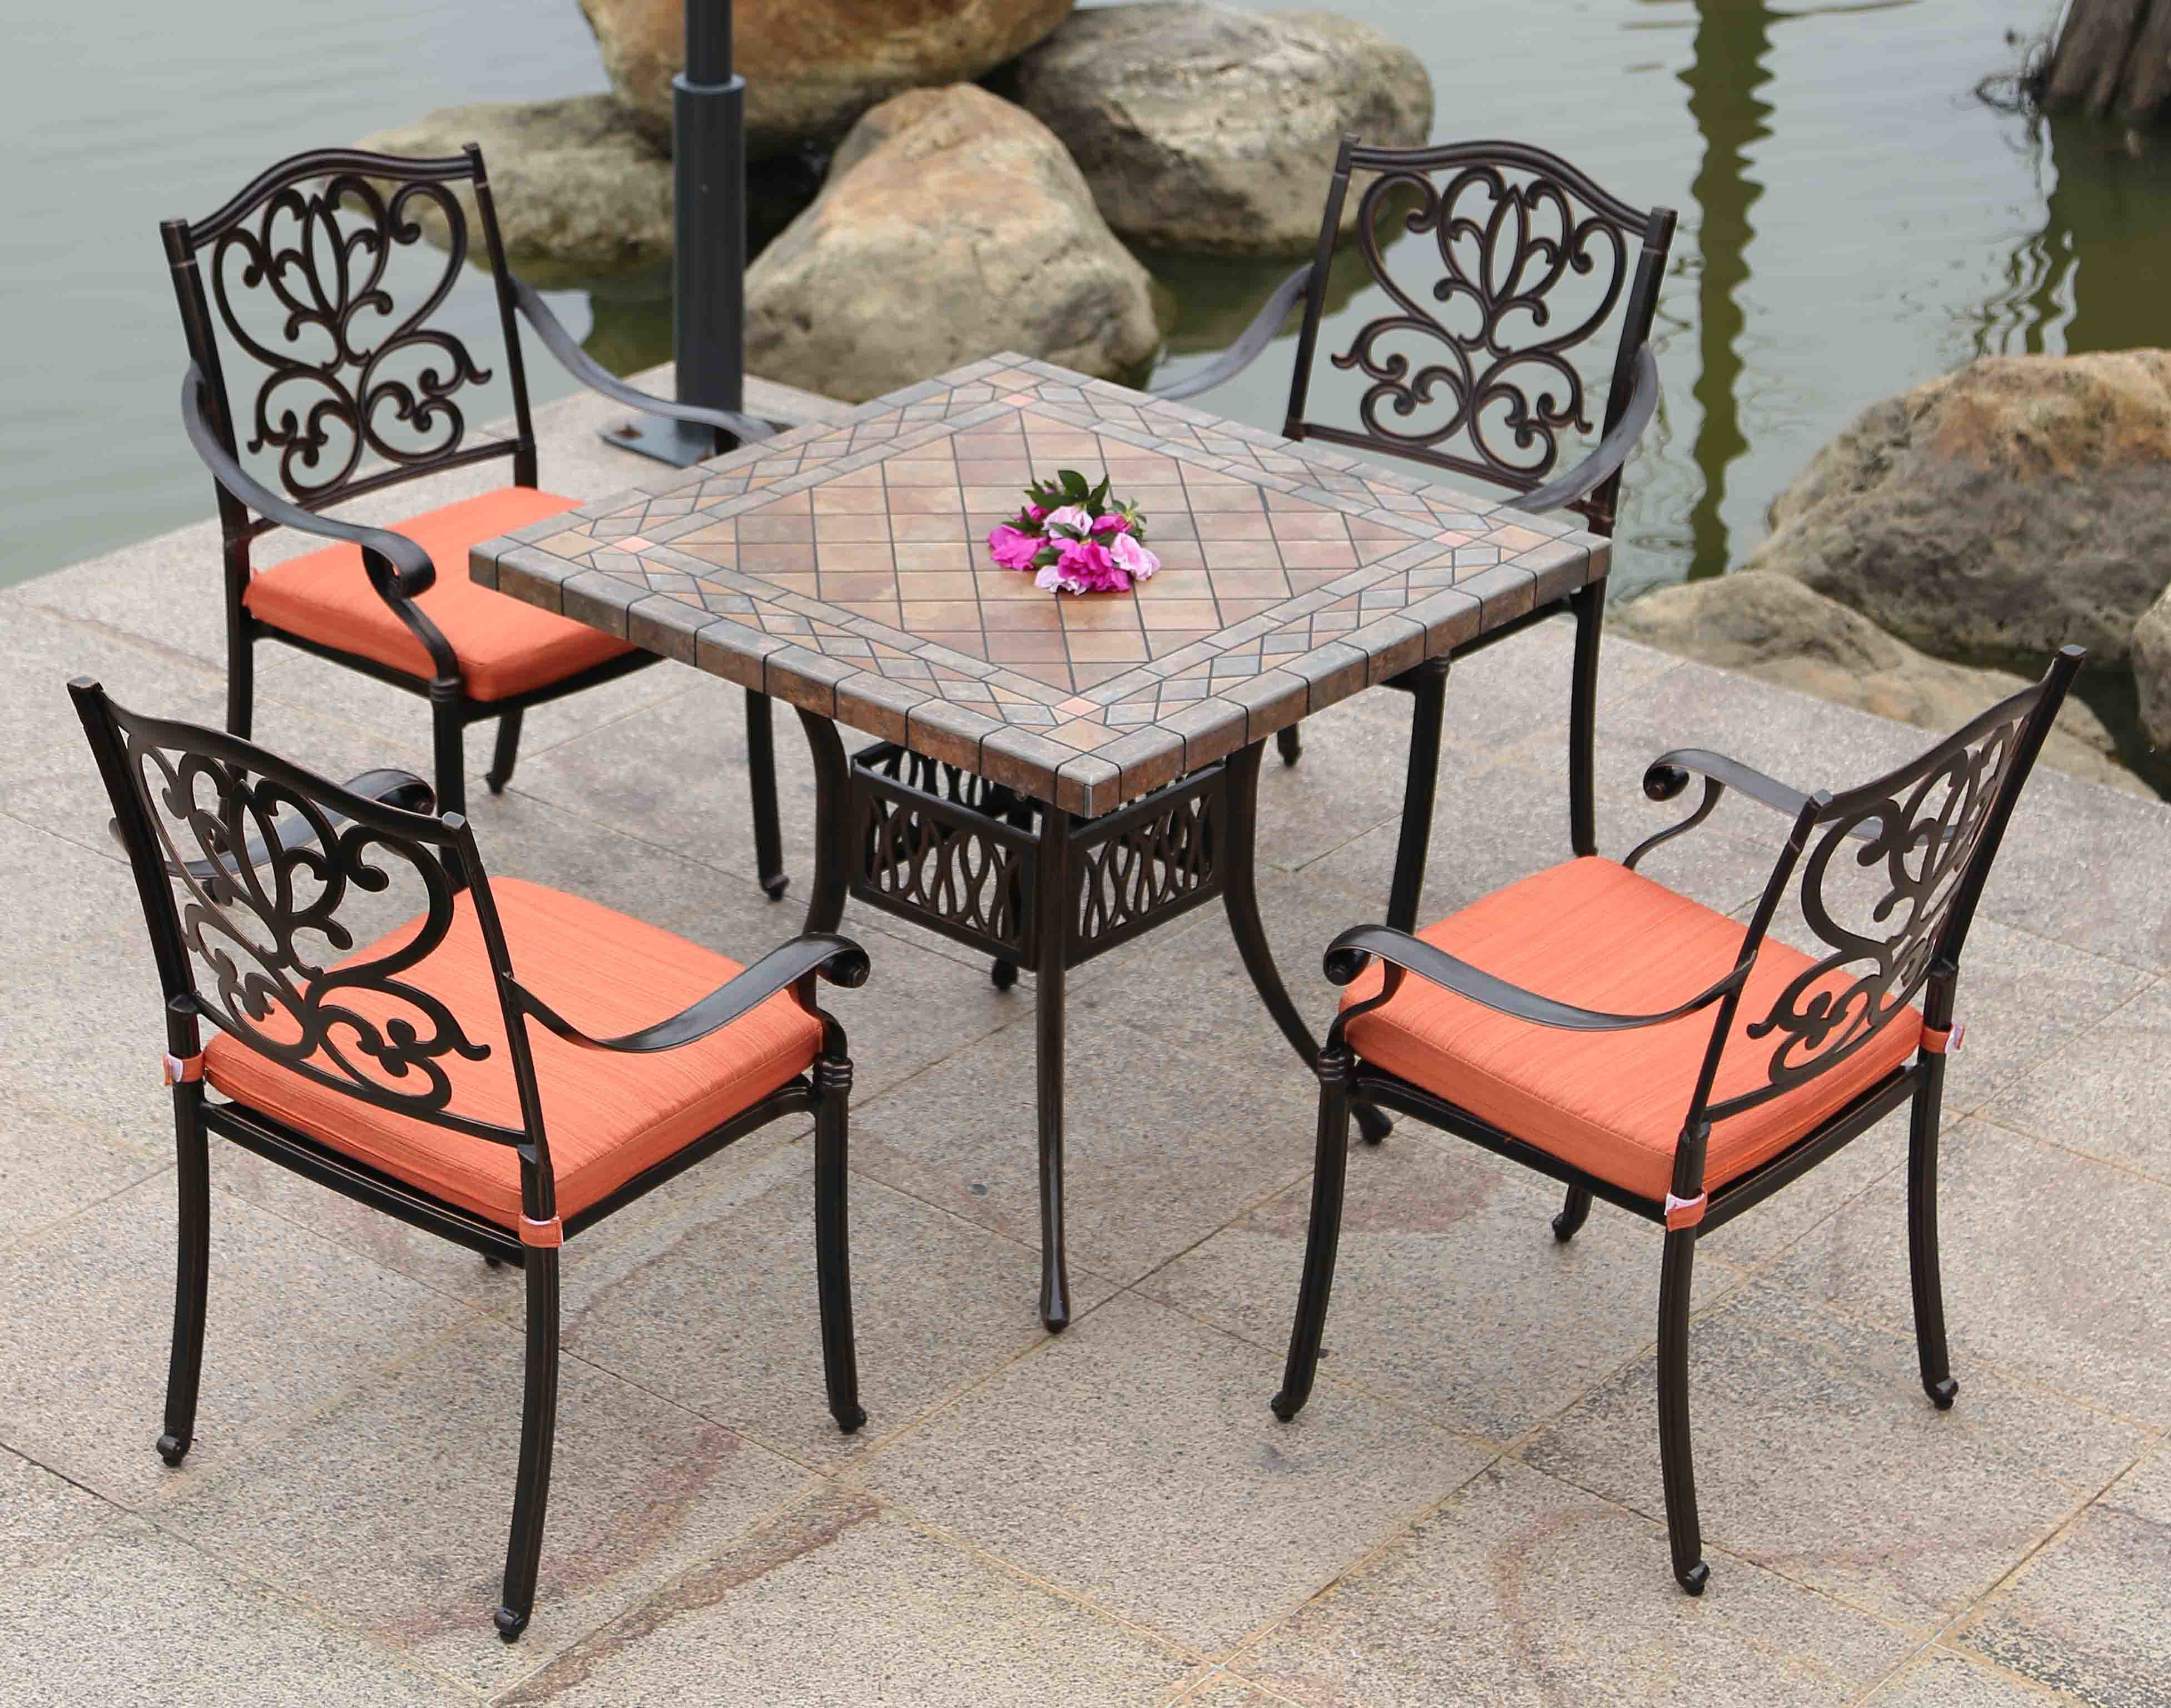 New Best Choice Cast Aluminum Dining Table and Chairs Outdoor Garden Furniture for Hotel Deck Yard